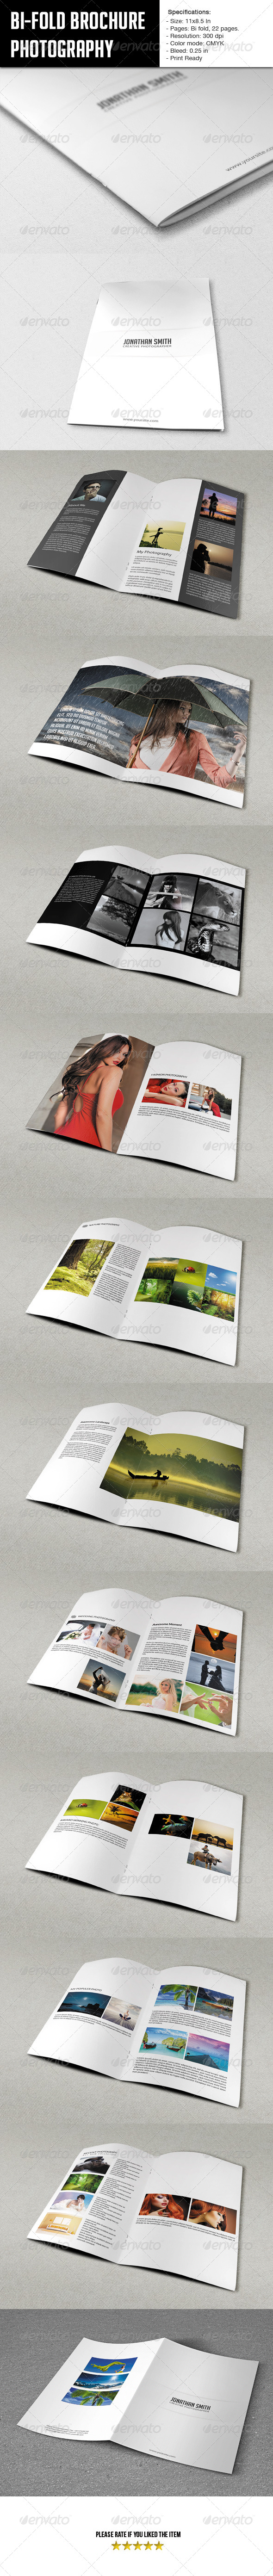 Bifold Brochure-Photographer Portfolio